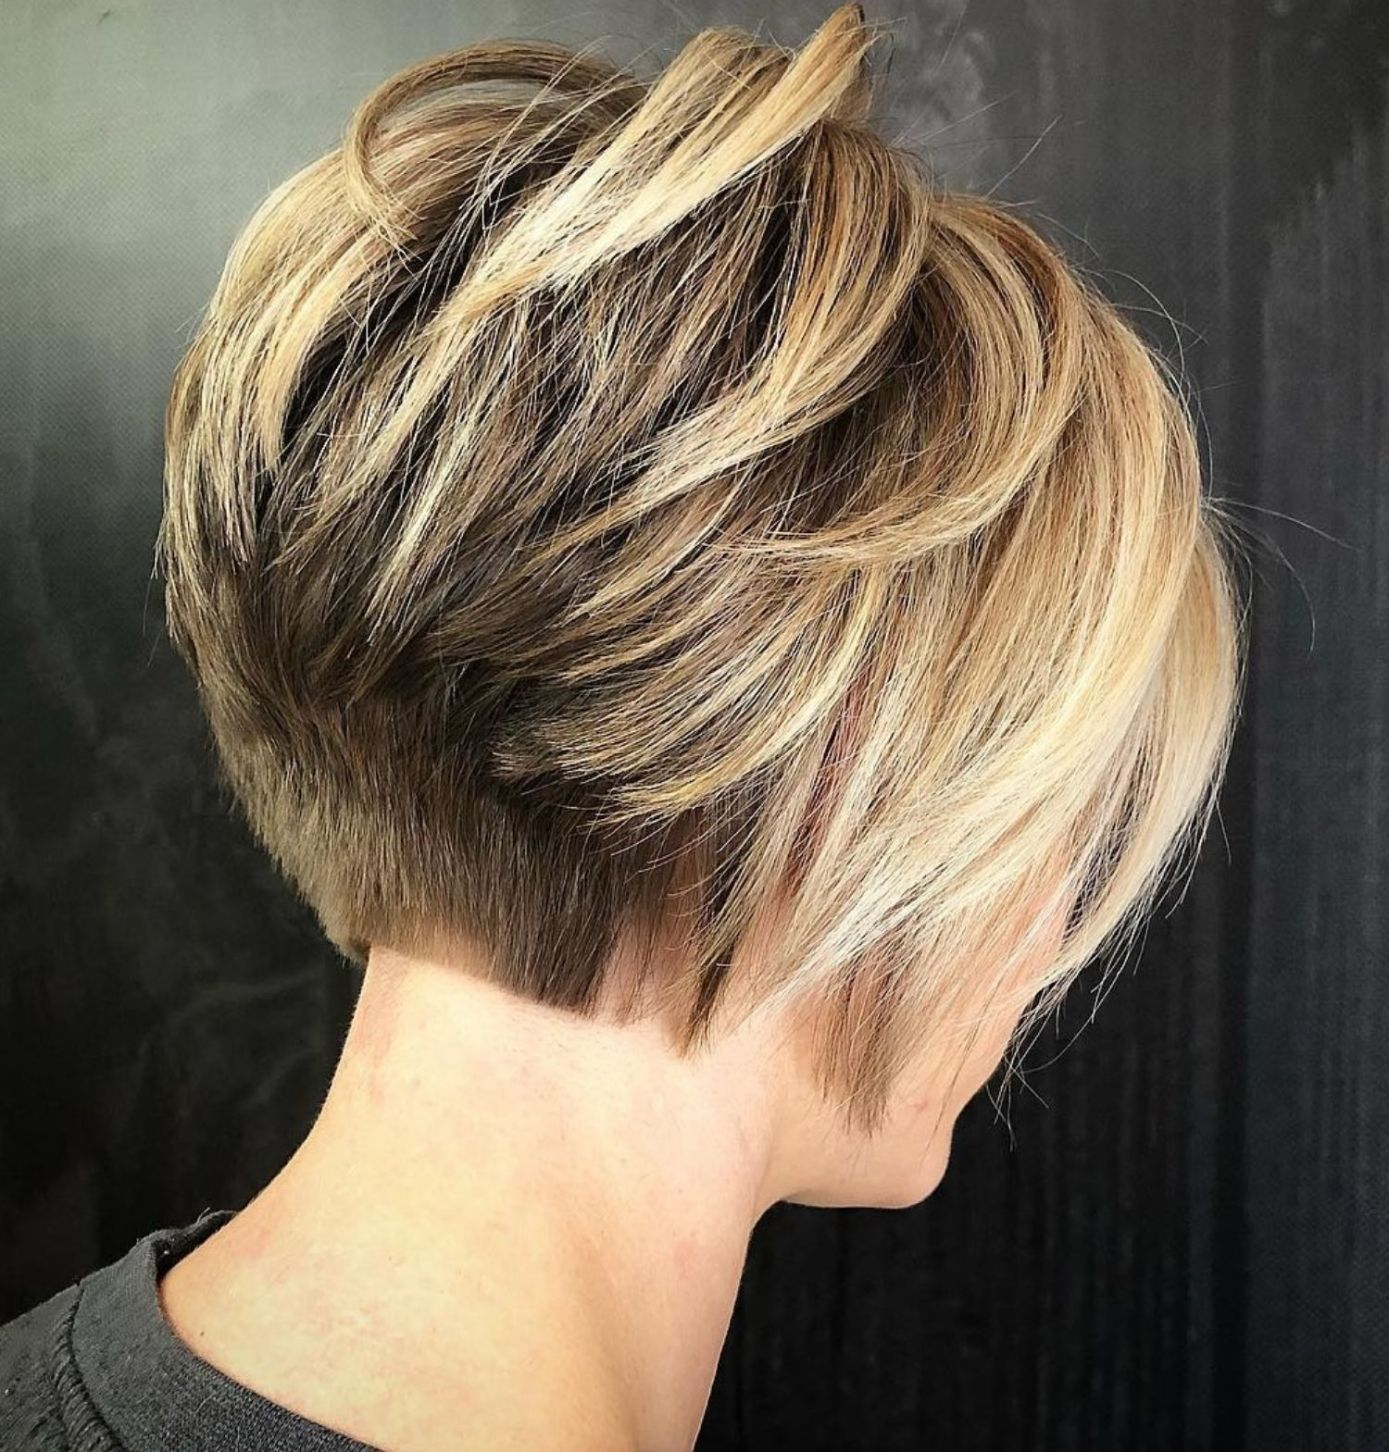 60 Classy Short Haircuts And Hairstyles For Thick Hair Bob Hairstyles For Thick Short Hairstyles For Thick Hair Hair Styles